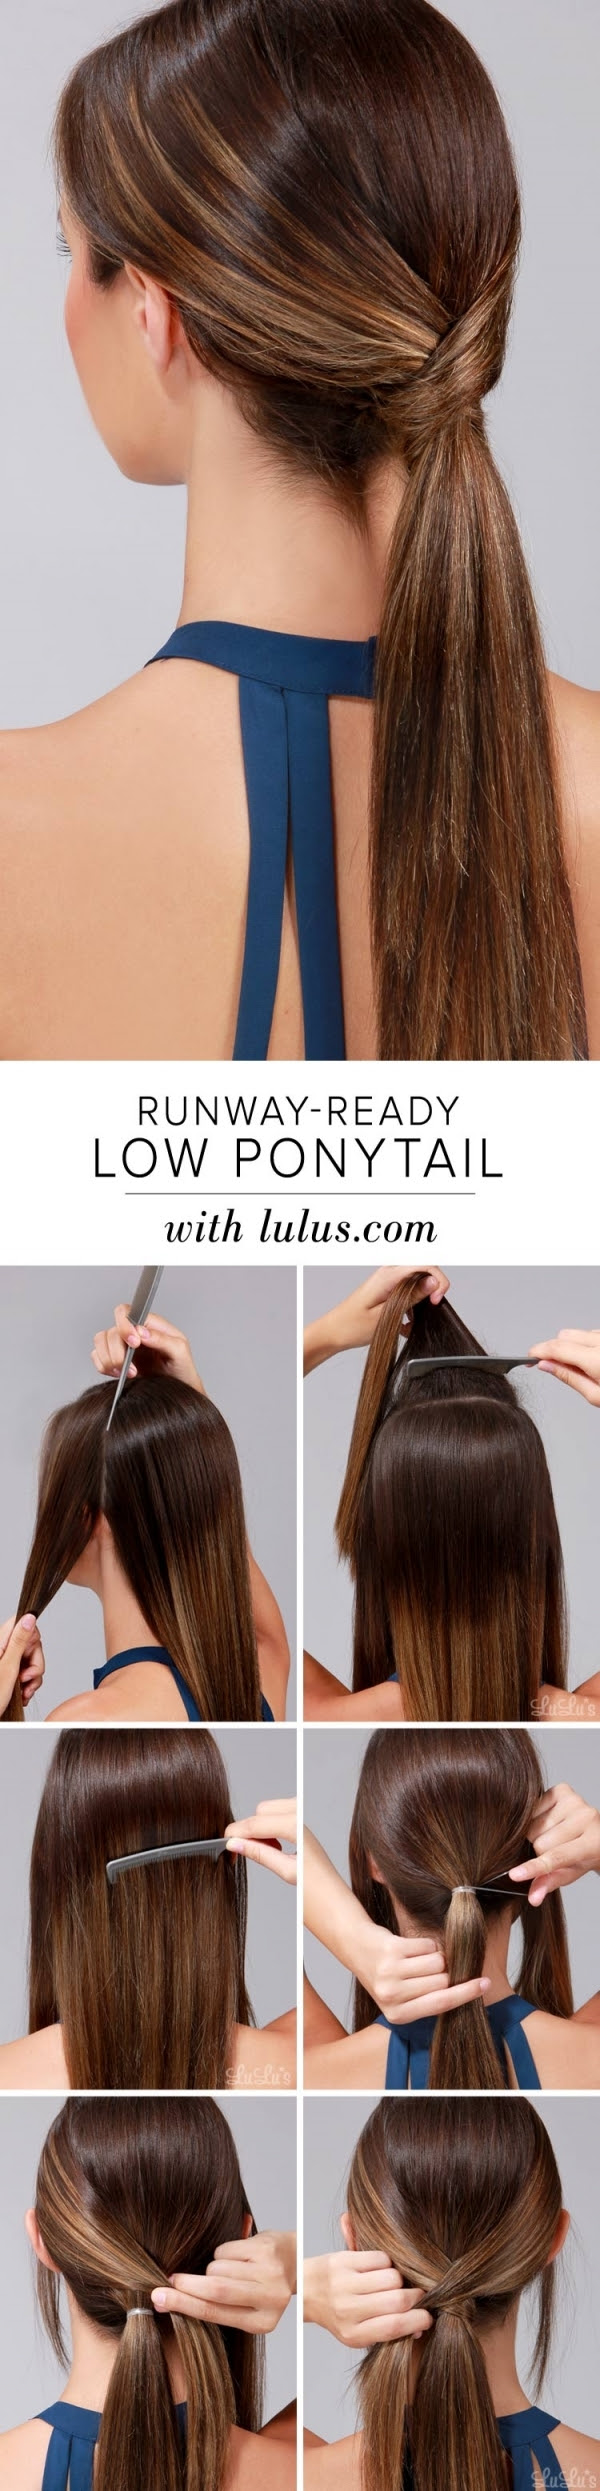 15 Simple Yet Stunning Hairstyle Tutorials for Lazy Women ...